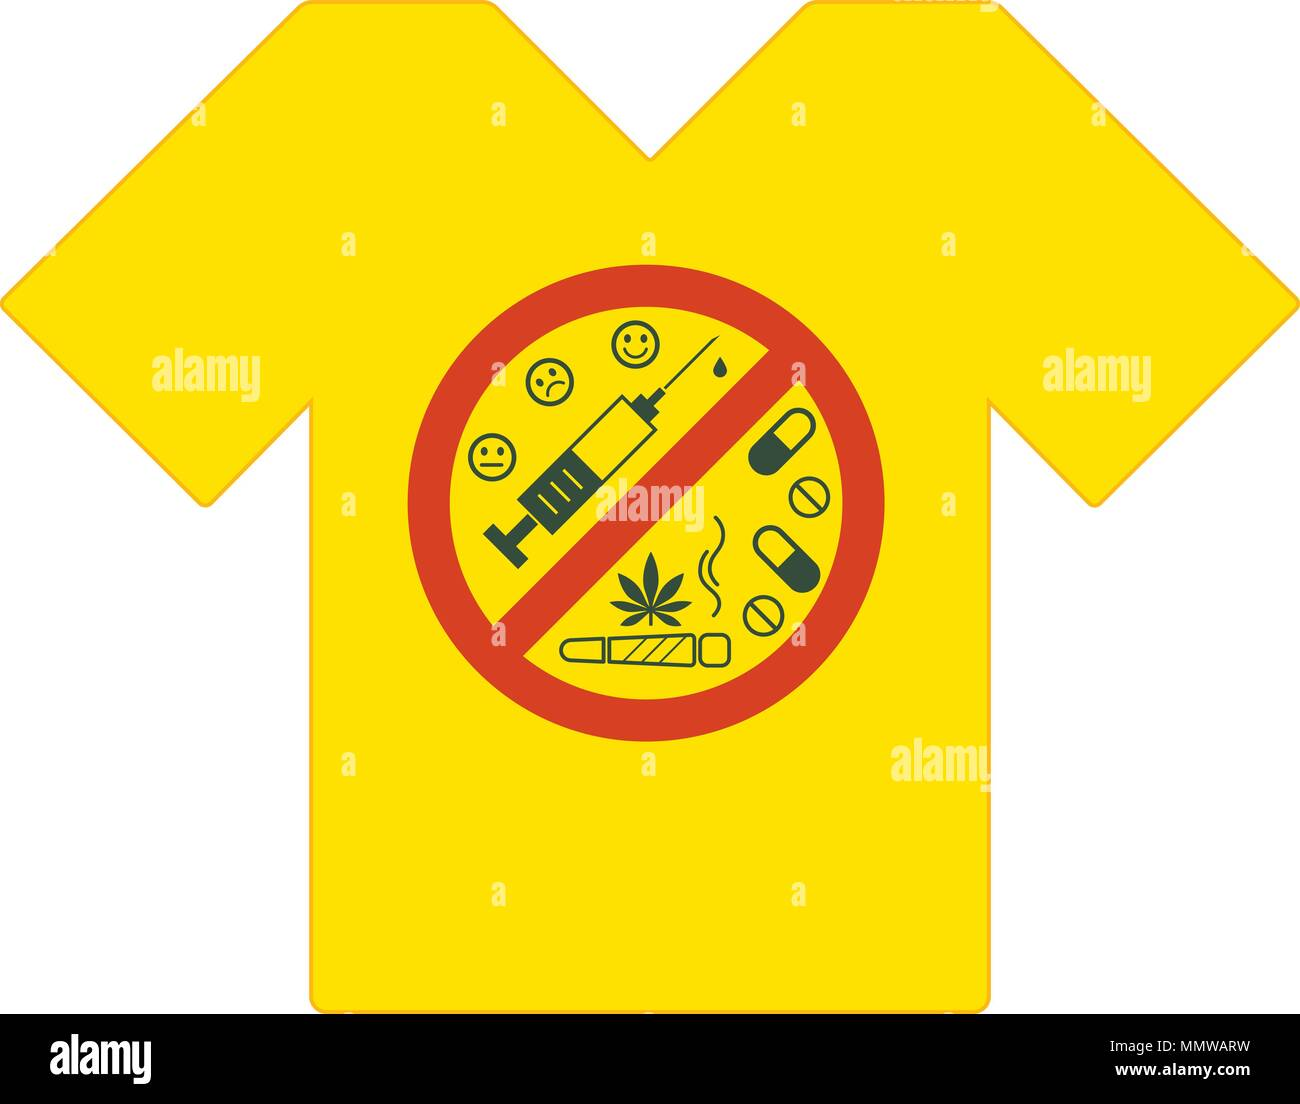 Yellow tee shirt. No drugs allowed. Drugs, marijuana leaf with forbidden sign - no drug. Drugs icon in prohibition red circle. Anti drugs. Just say no - Stock Image